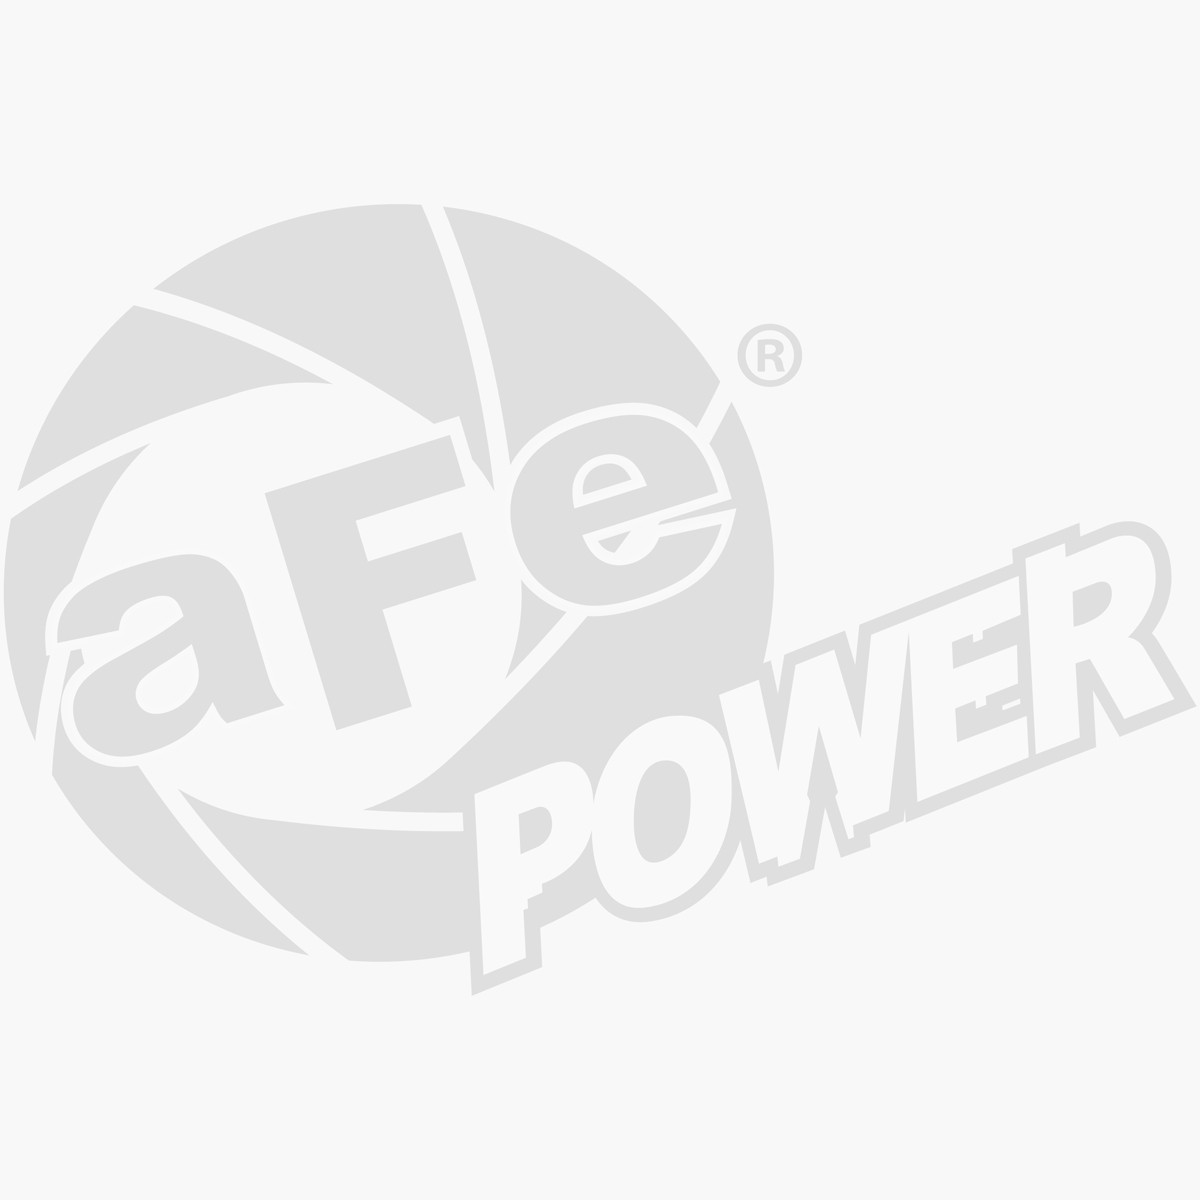 aFe POWER 73-10016 Magnum FLOW Pro GUARD7 Air Filter